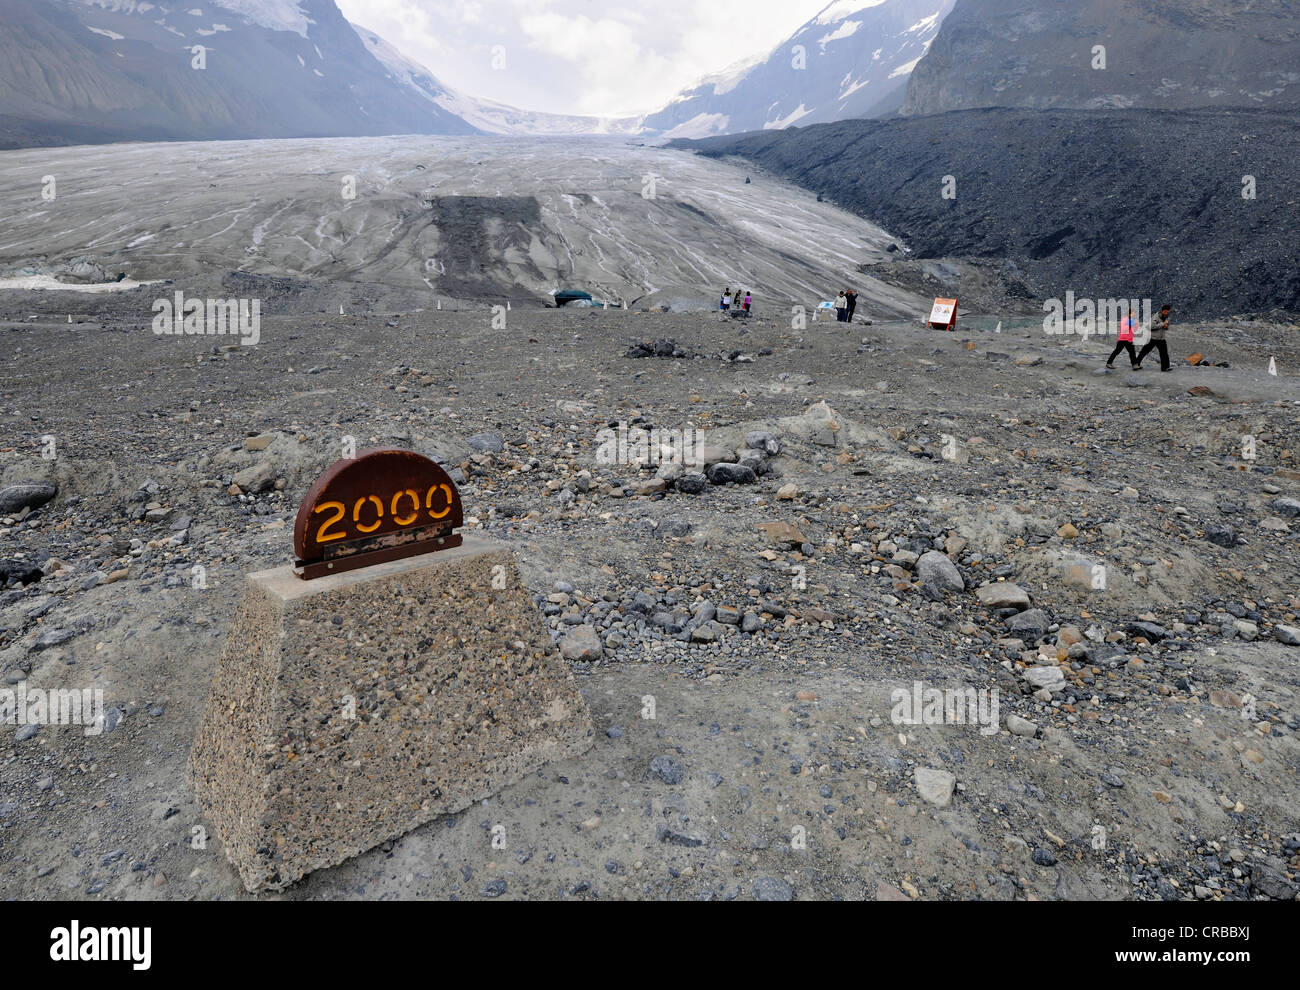 Marker showing the retreat of the glacier due to global warming, former extent of the Athabasca Glacier in 2000 - Stock Image